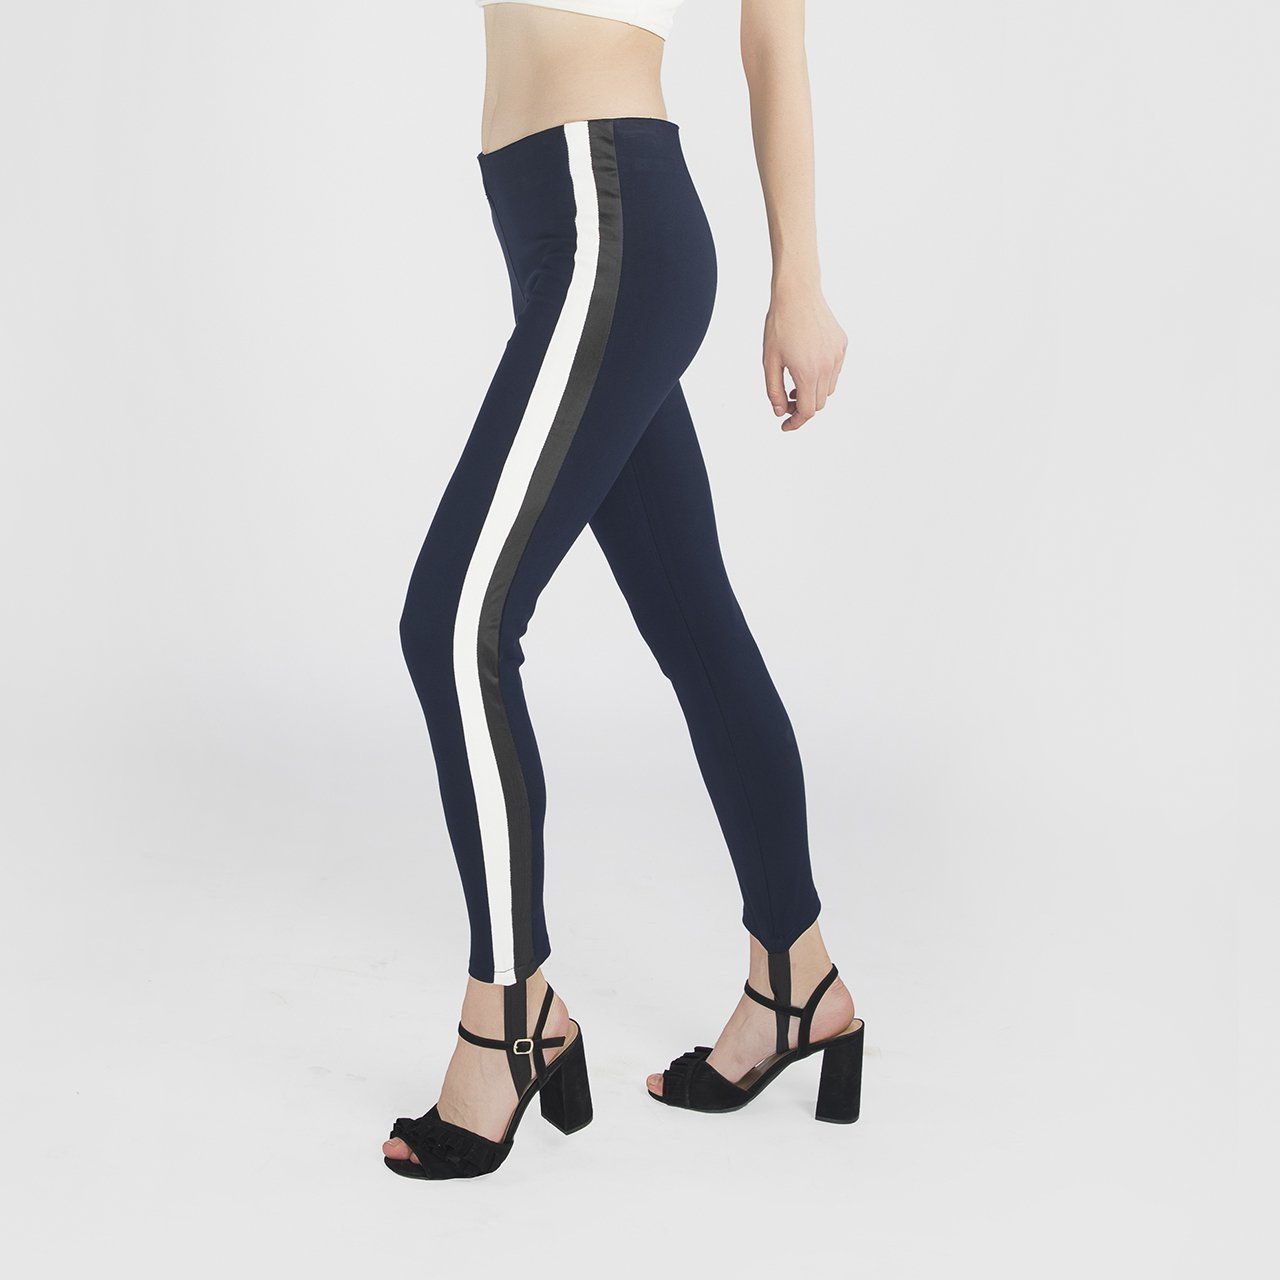 BLUE JUNO LEGGINGS